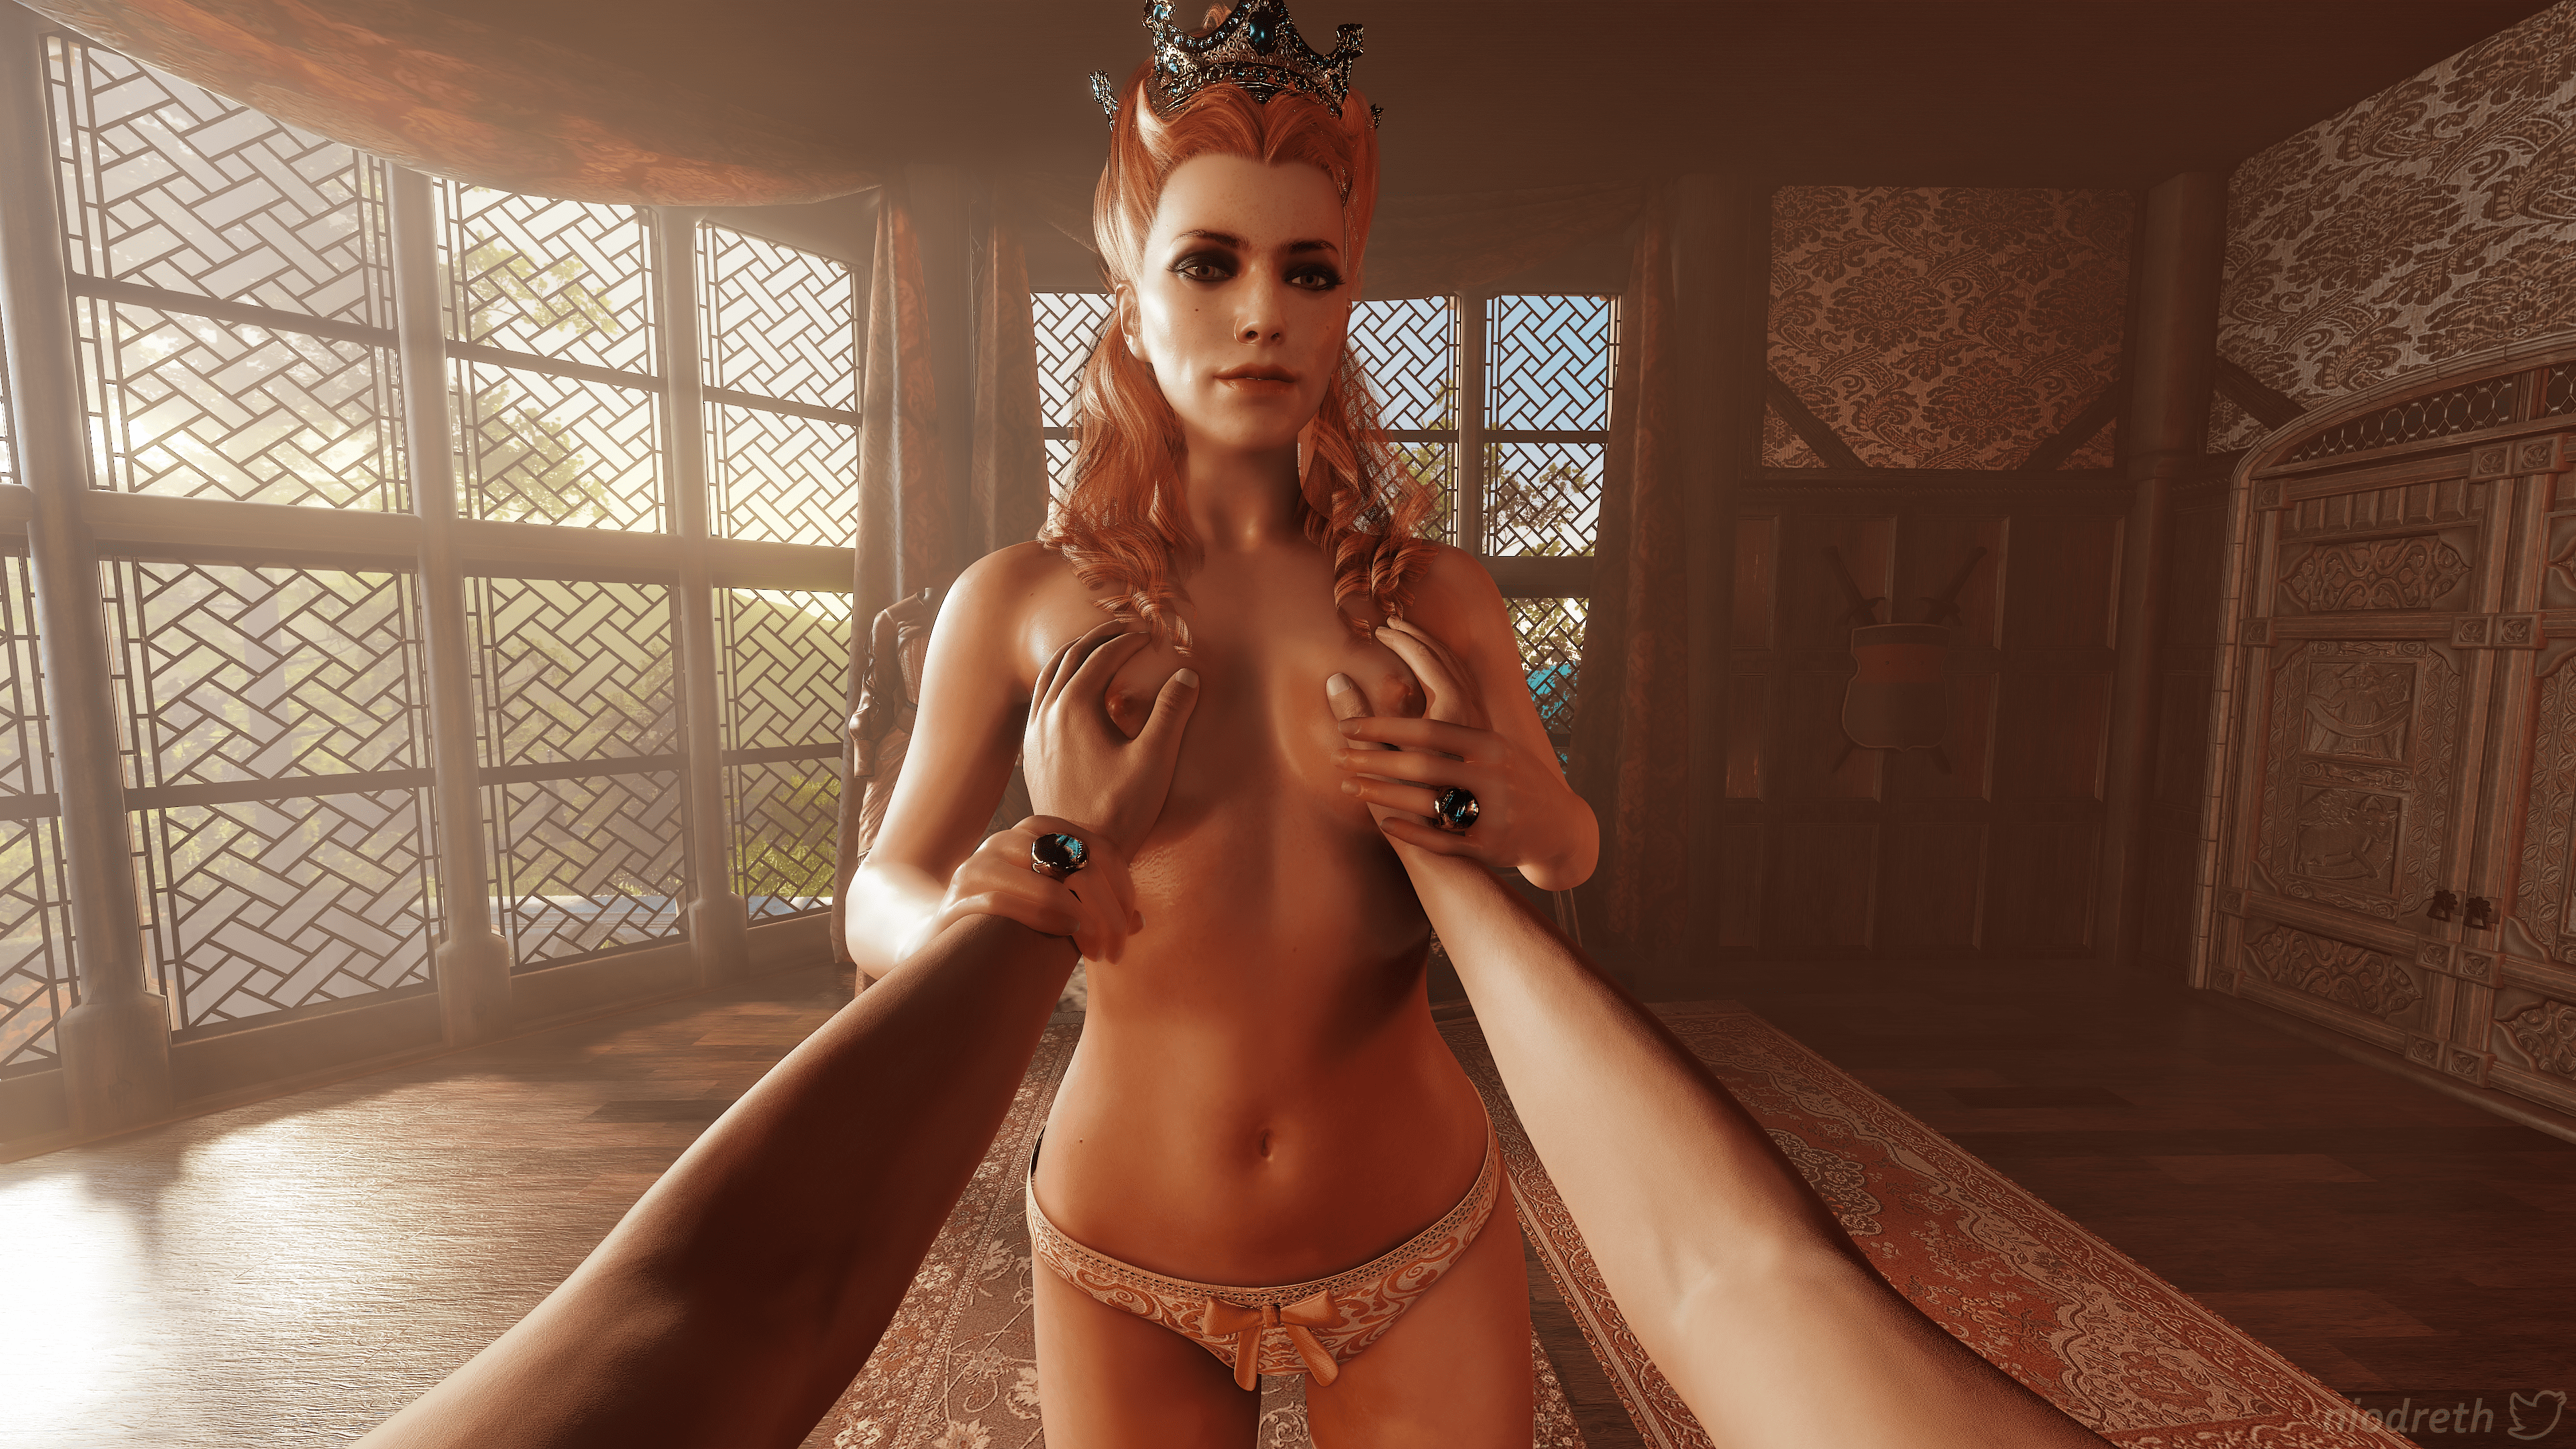 Amateur Porn Custome The Witcher witcher anna henrietta. porno top compilations free. comments: 3